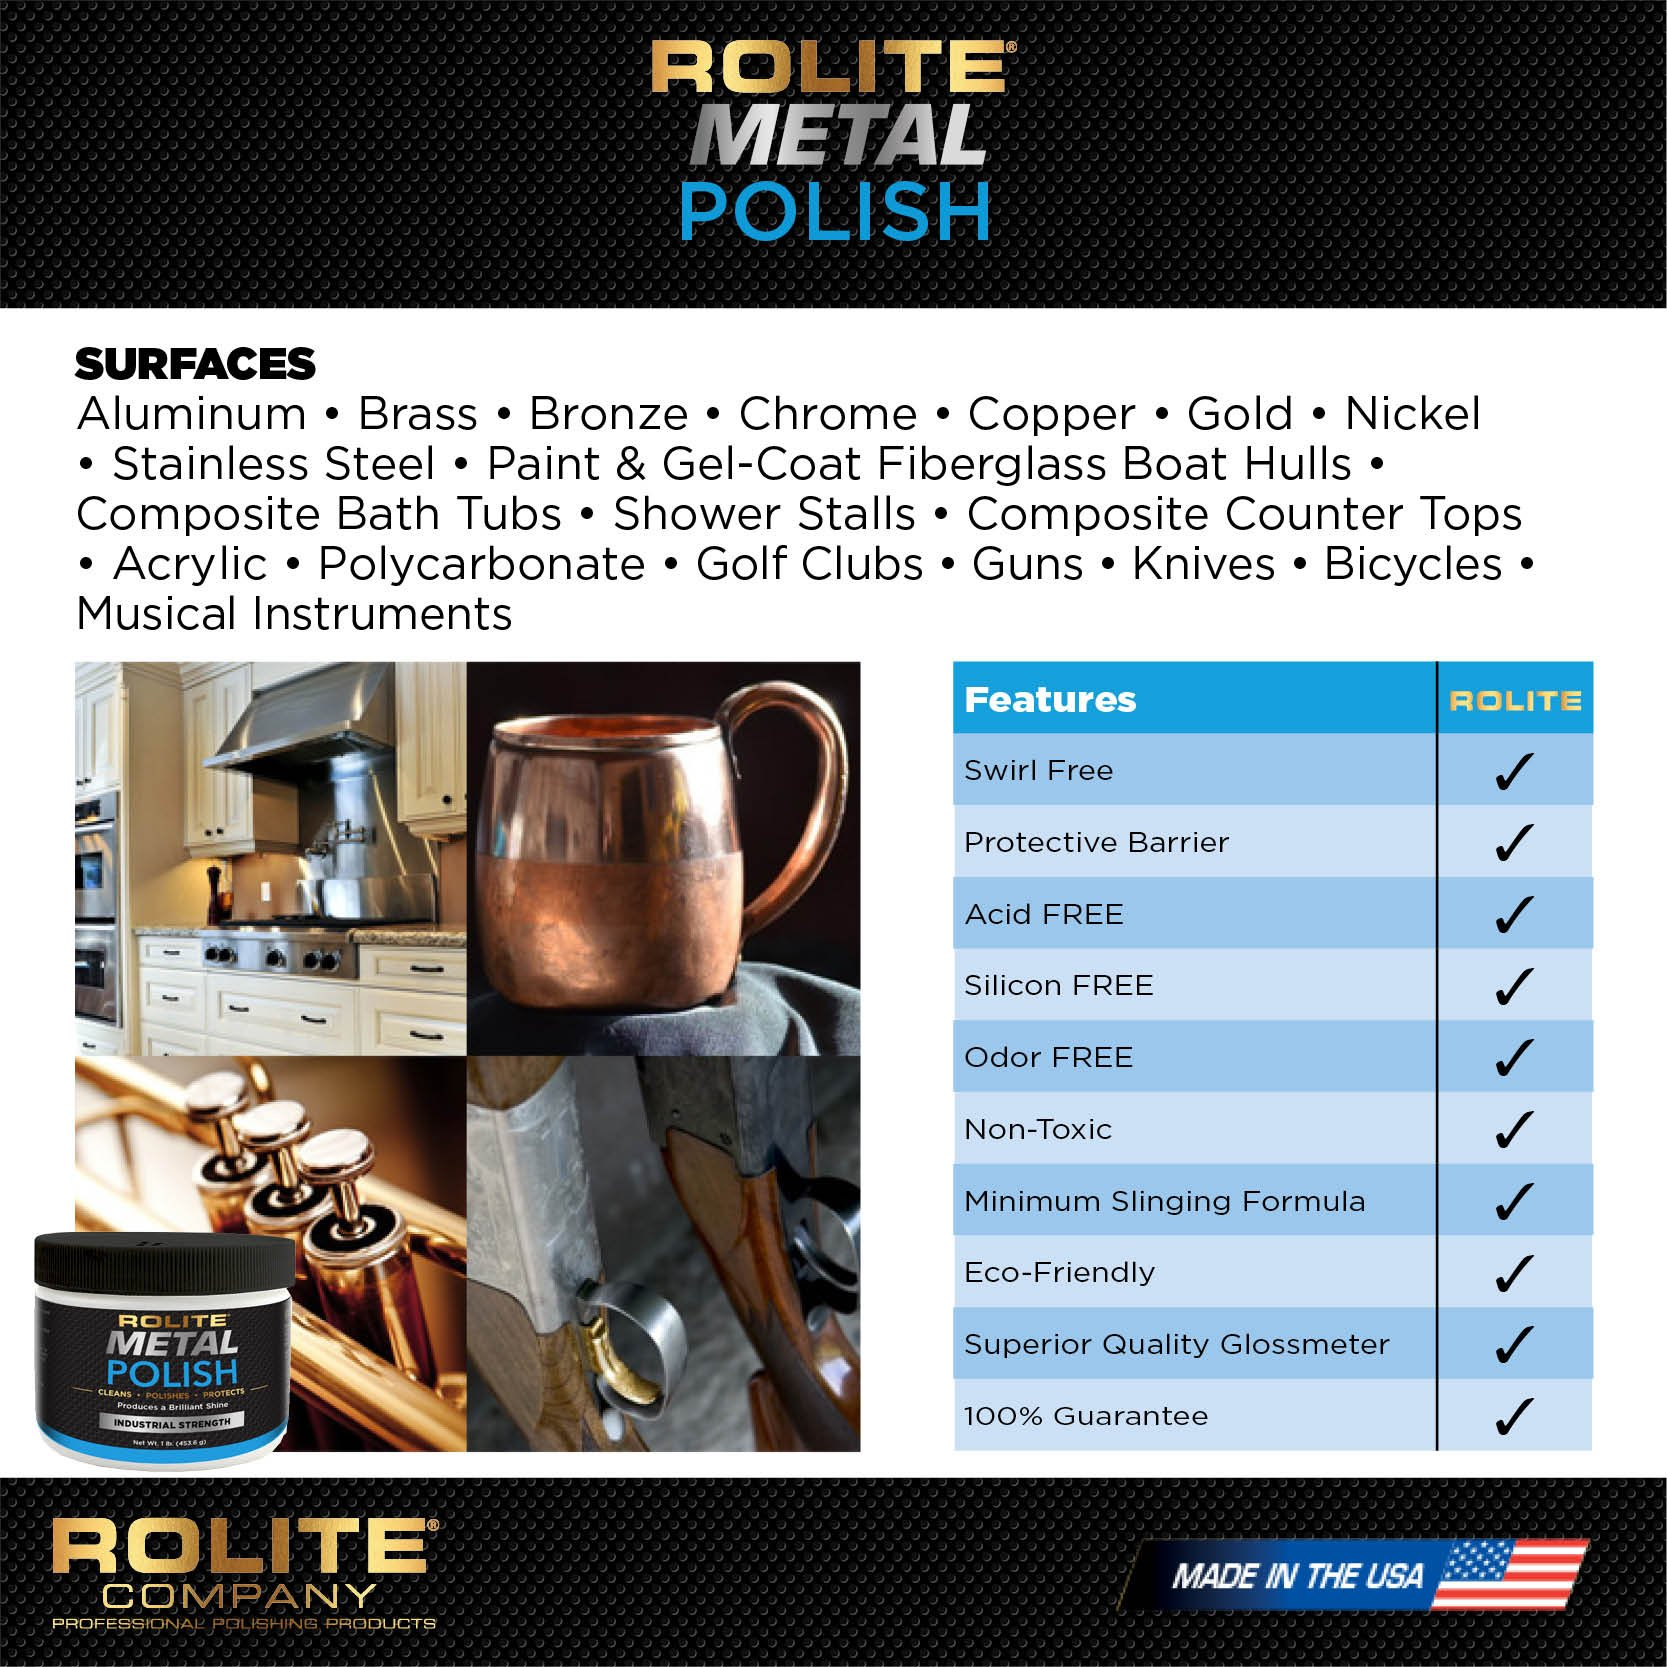 Rolite Metal Polish Paste (1lb) for Aluminum, Brass, Bronze, Chrome, Copper, Gold, Nickel and Stainless Steel by Rolite (Image #3)